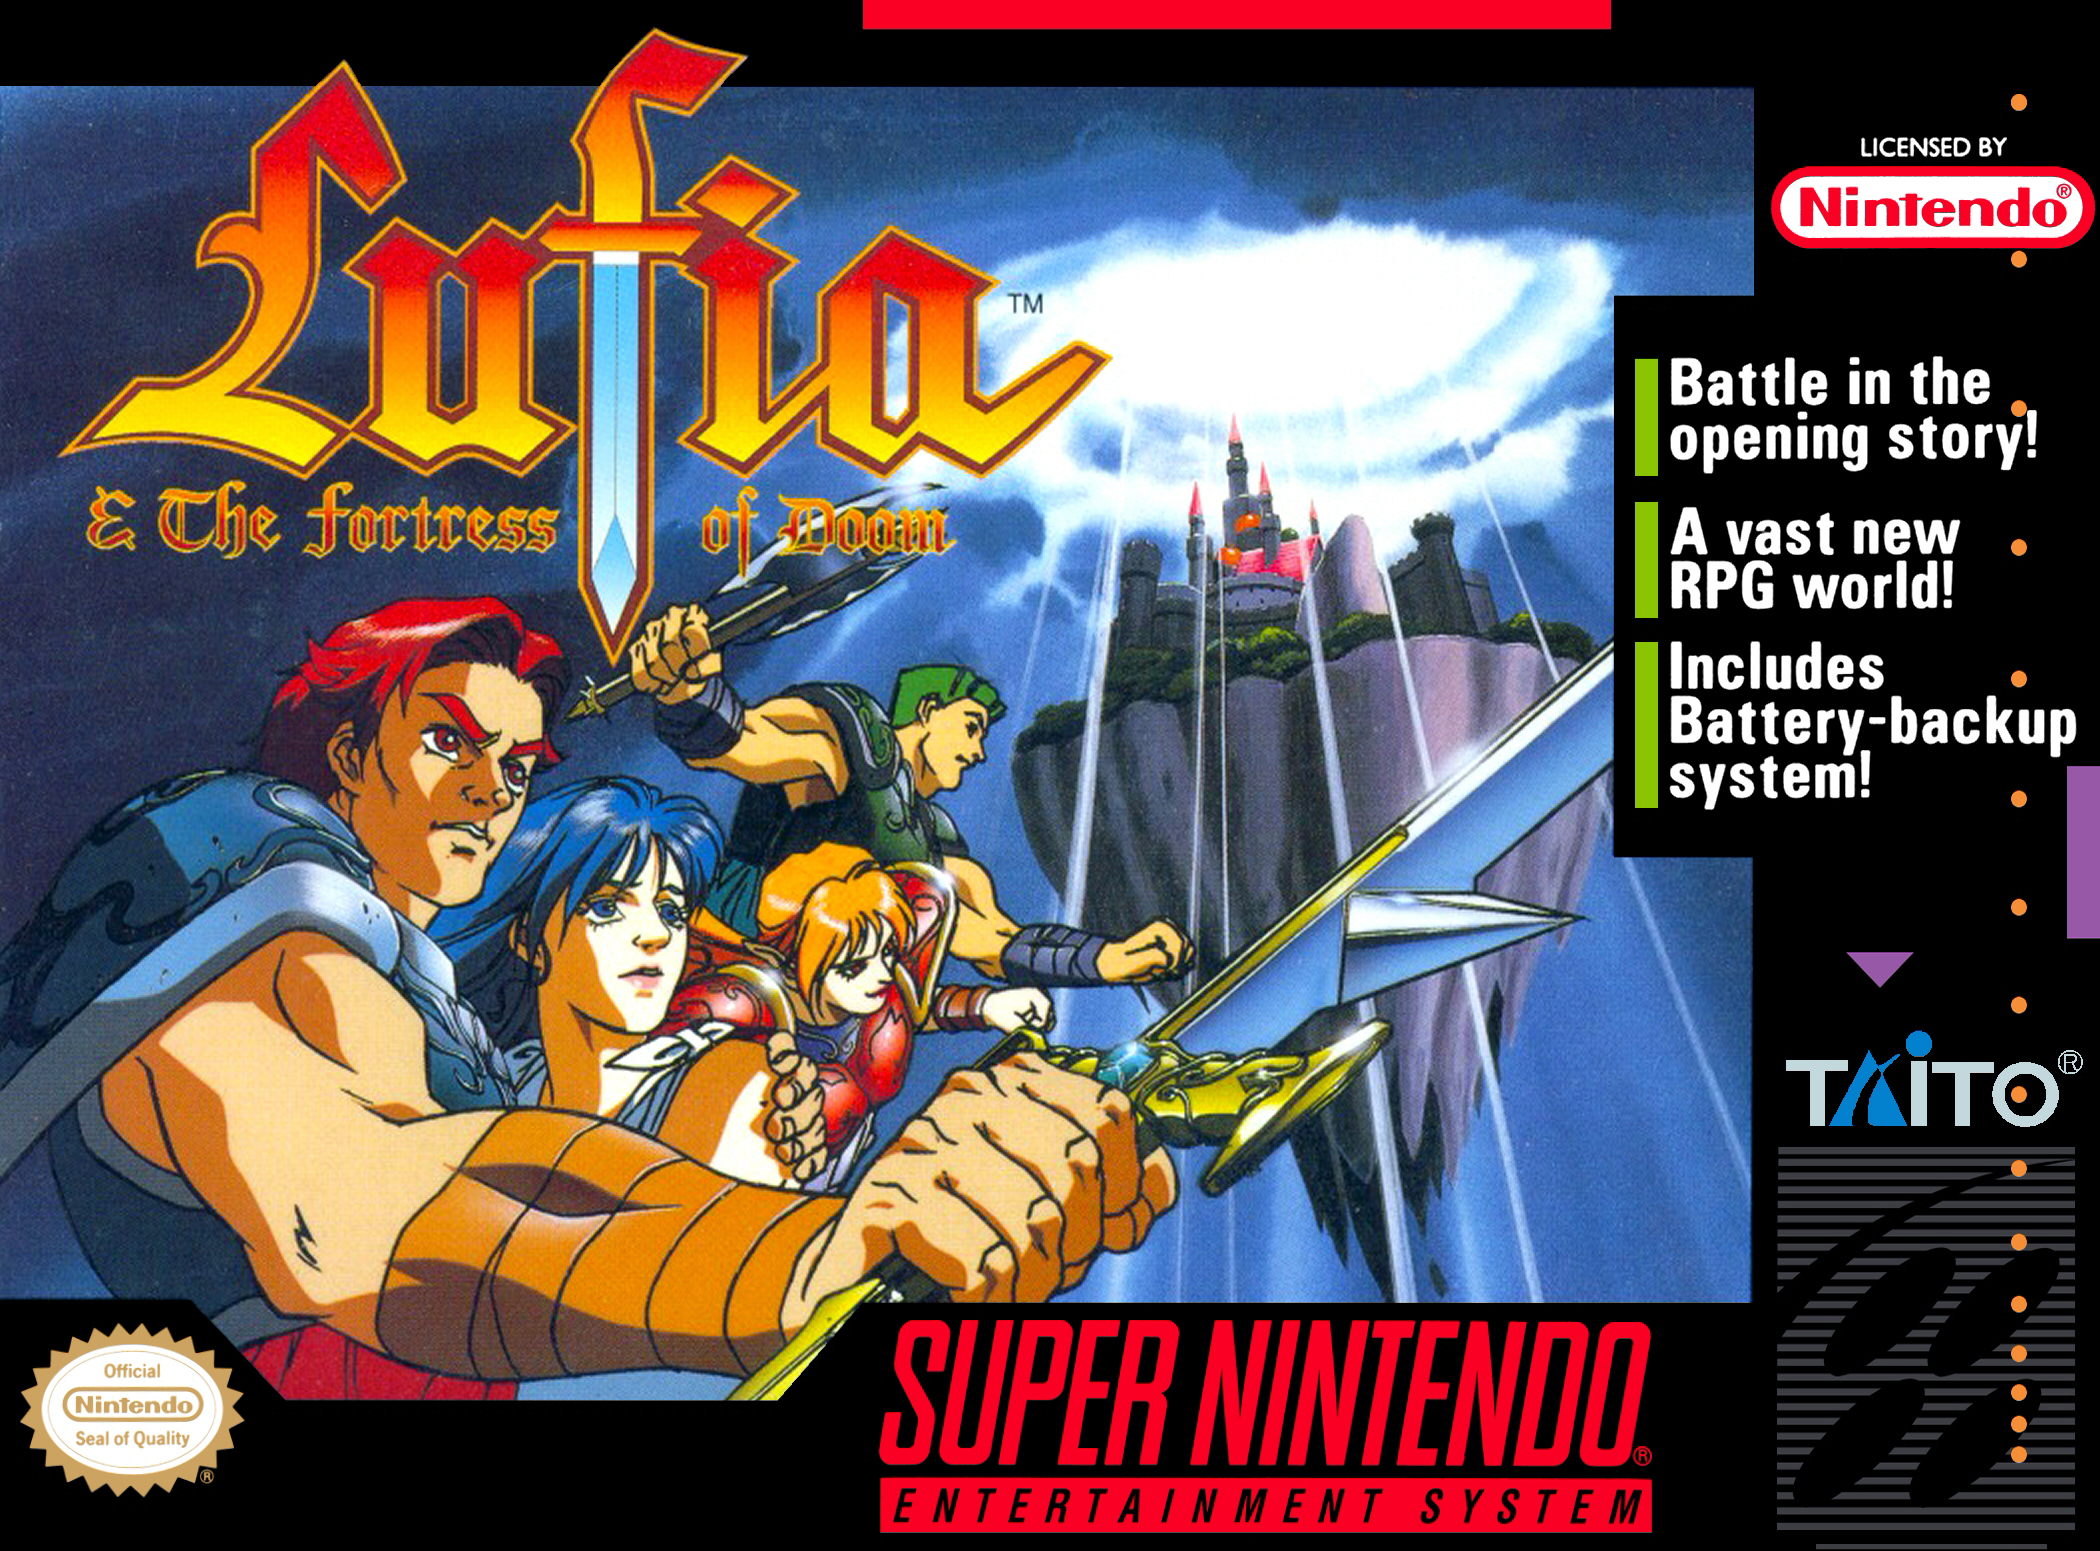 Lufia & The Fortress of Doom/SNES